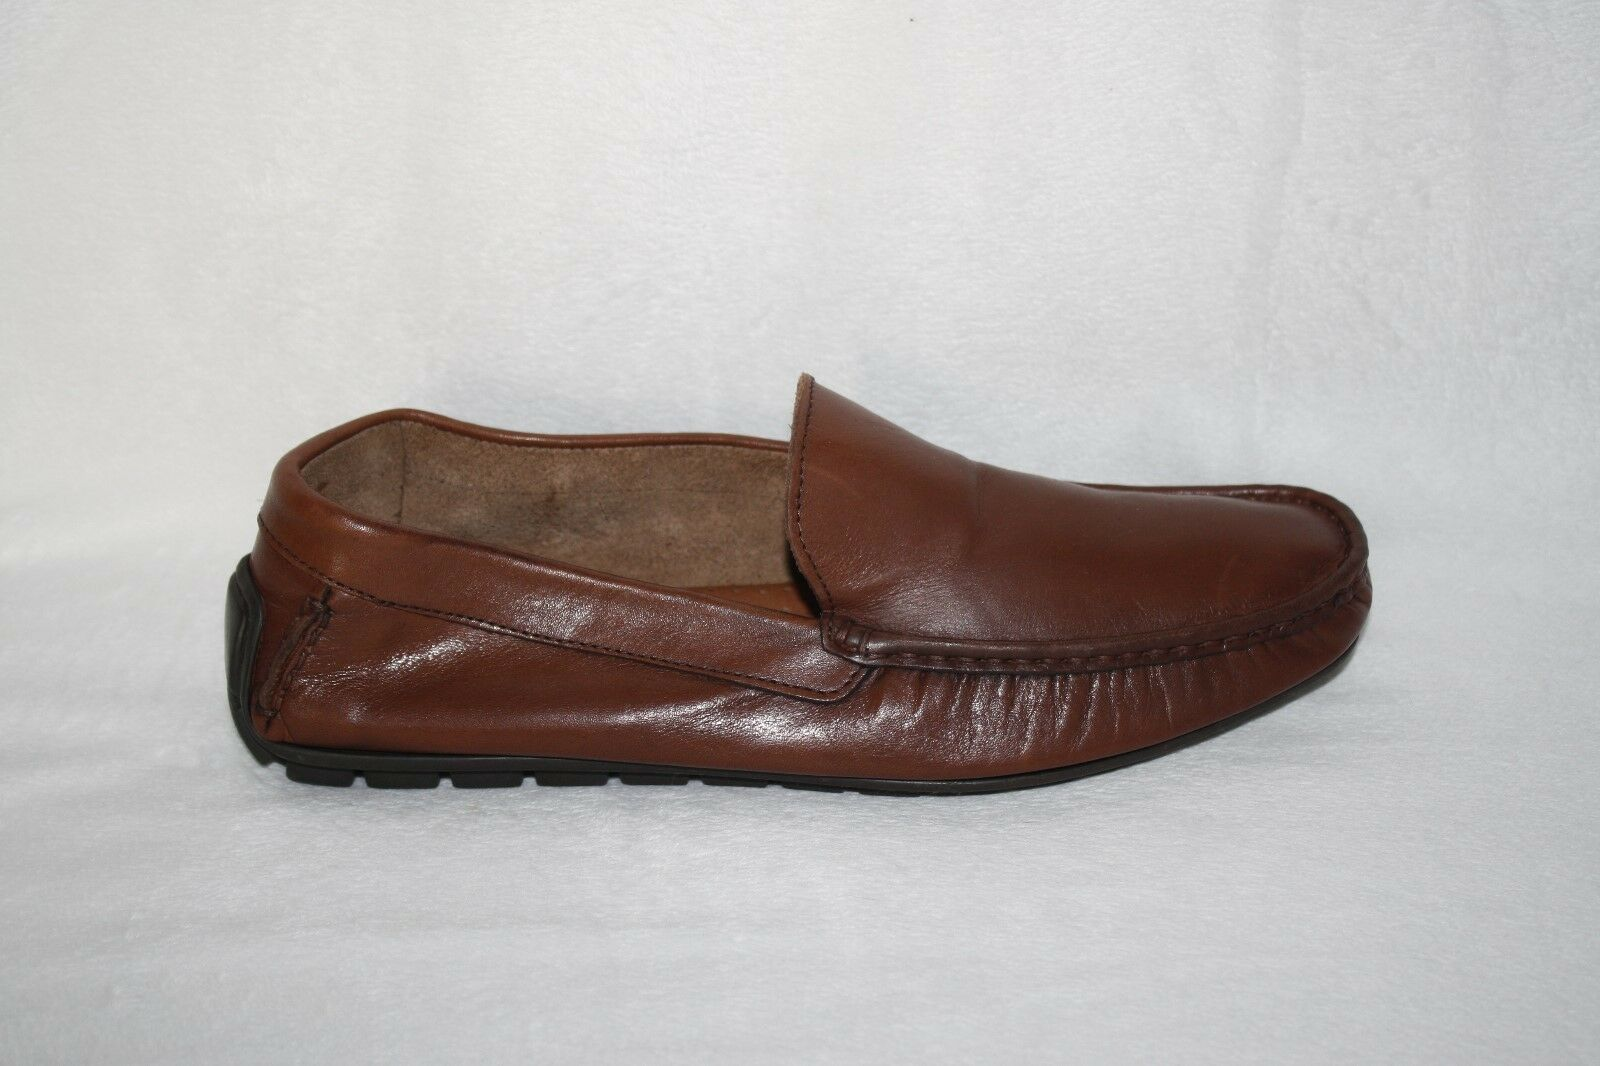 MENS braun LEATHER LOAFERS BY DINO DRAGHI EURO SZ 42 US Größe 10-10.5 (K93)